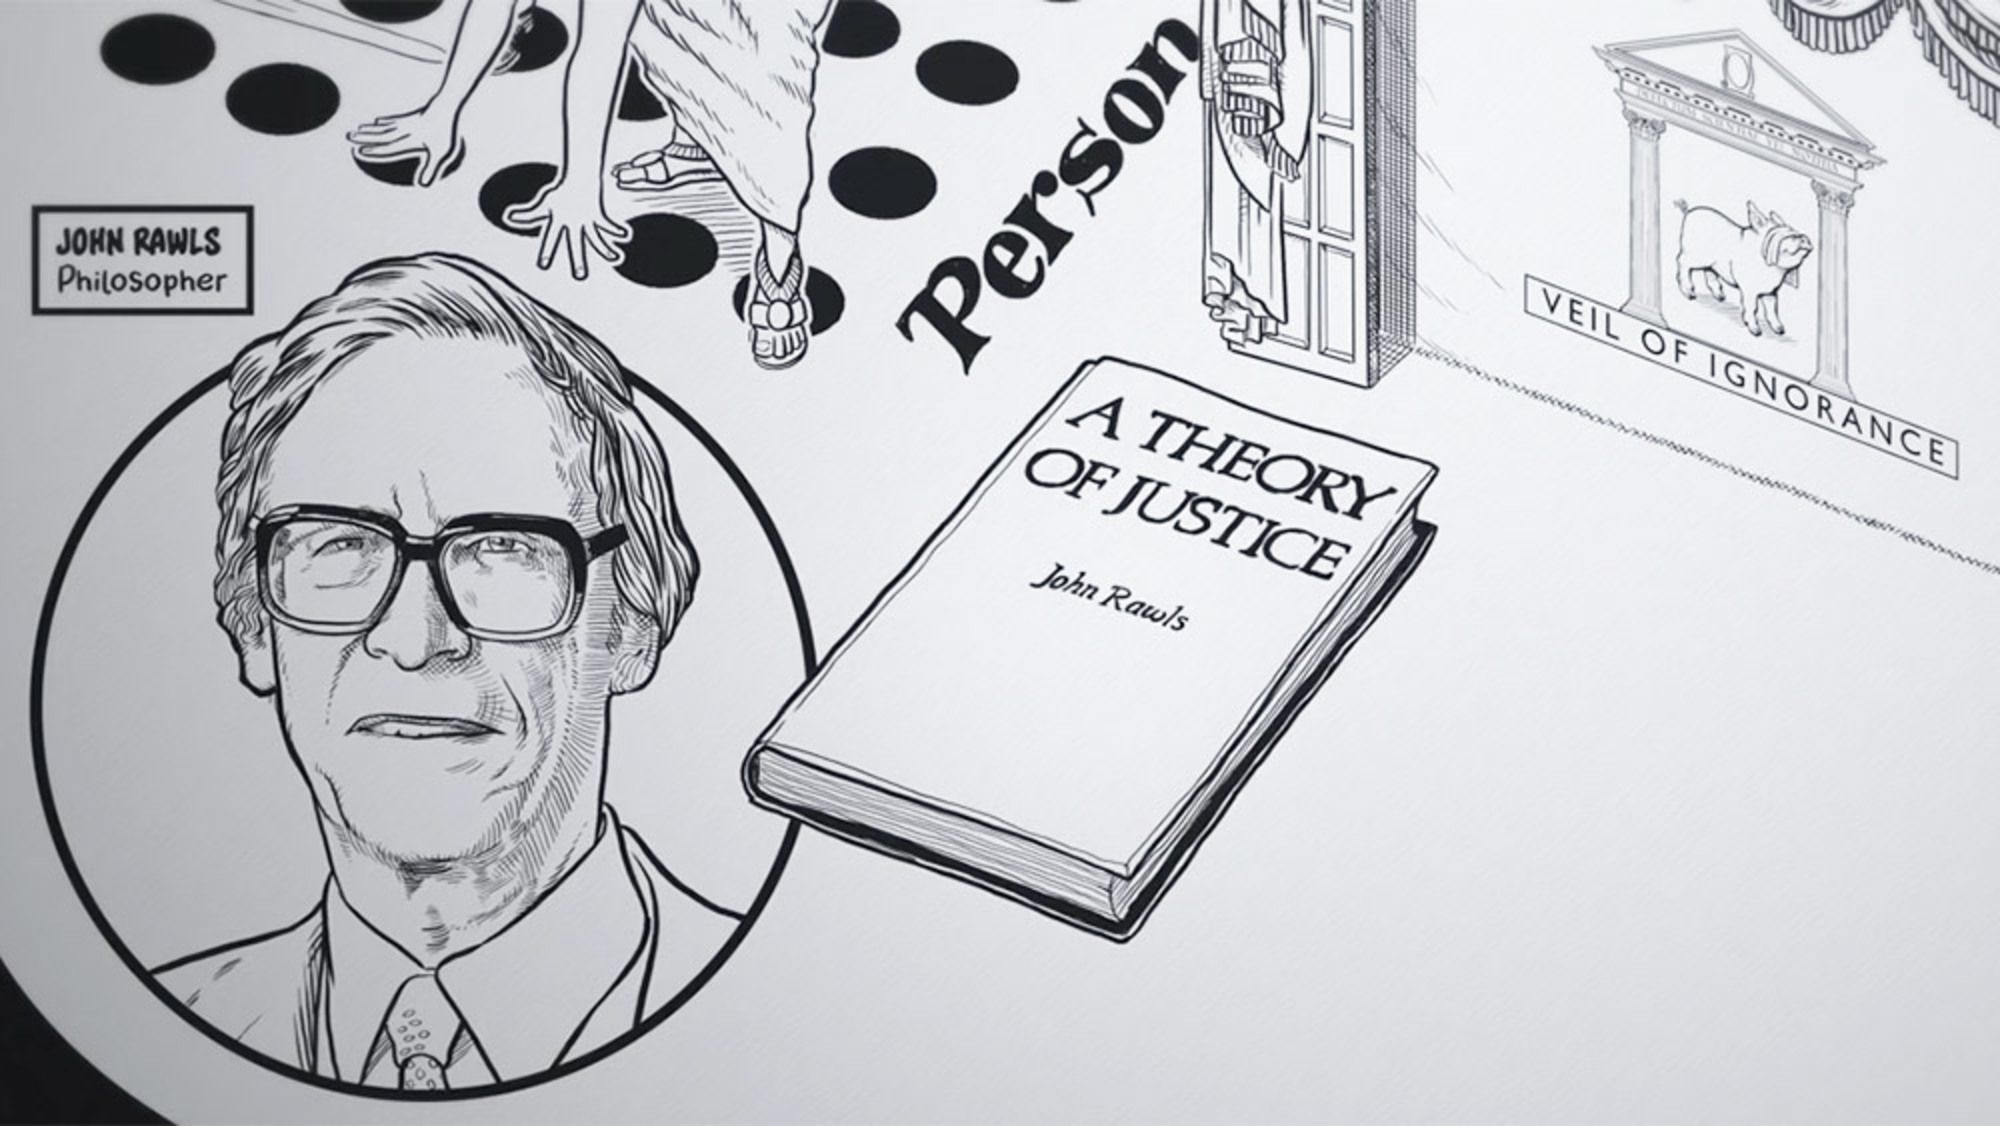 Want To Build A Just Society John Rawls Said To Start By Ignoring Your Identity Aeon Videos Society Sayings Critical Thinking